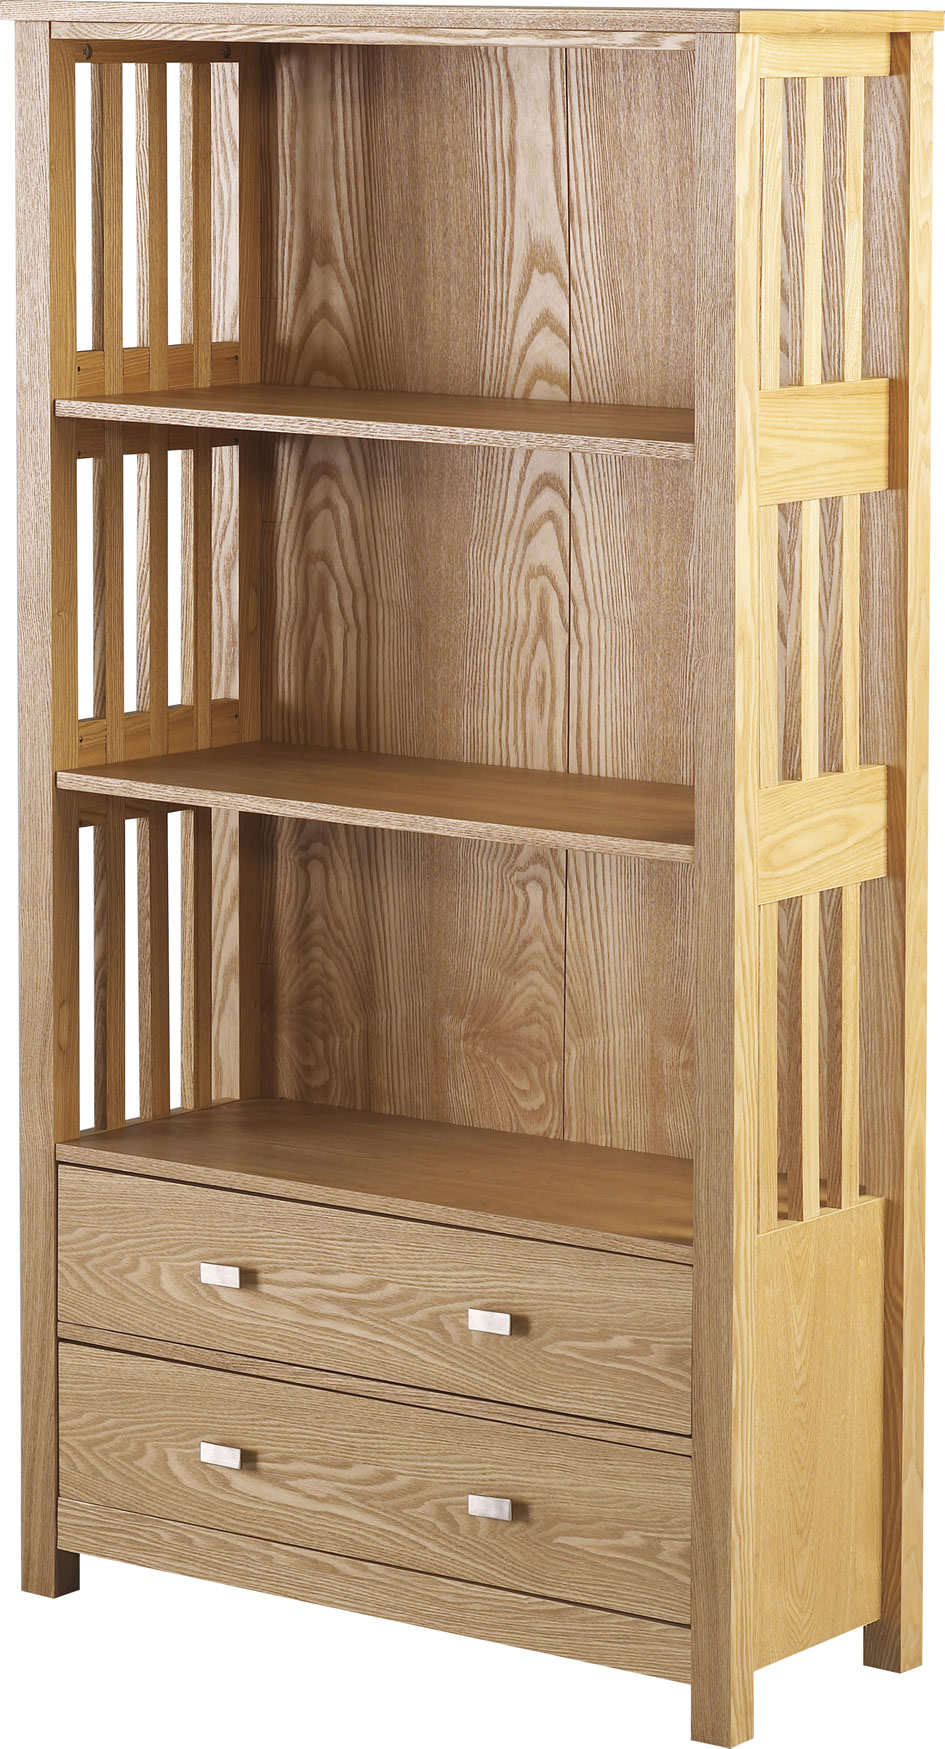 ashmore_2_draw_bookcase.jpg